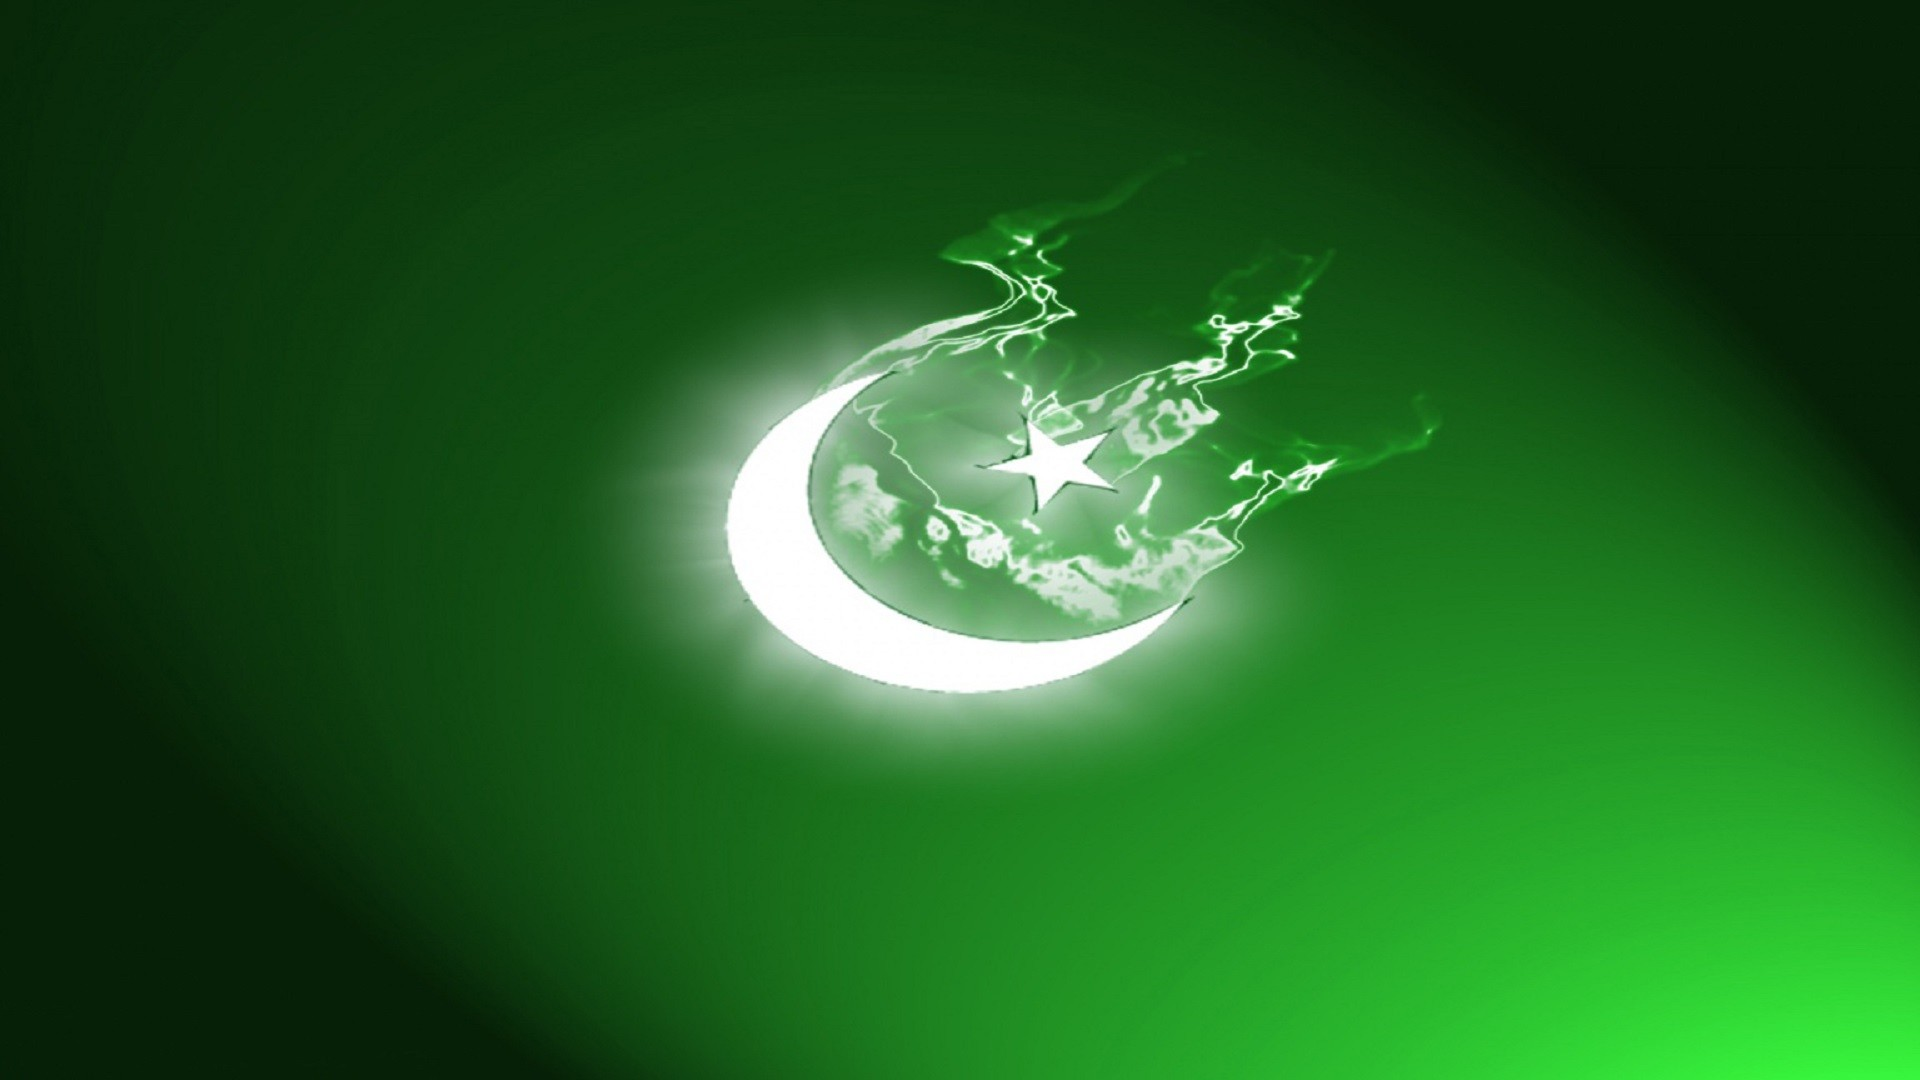 Res: 1920x1080, animated-flag-free-hd-wallpapers-top-pakistani